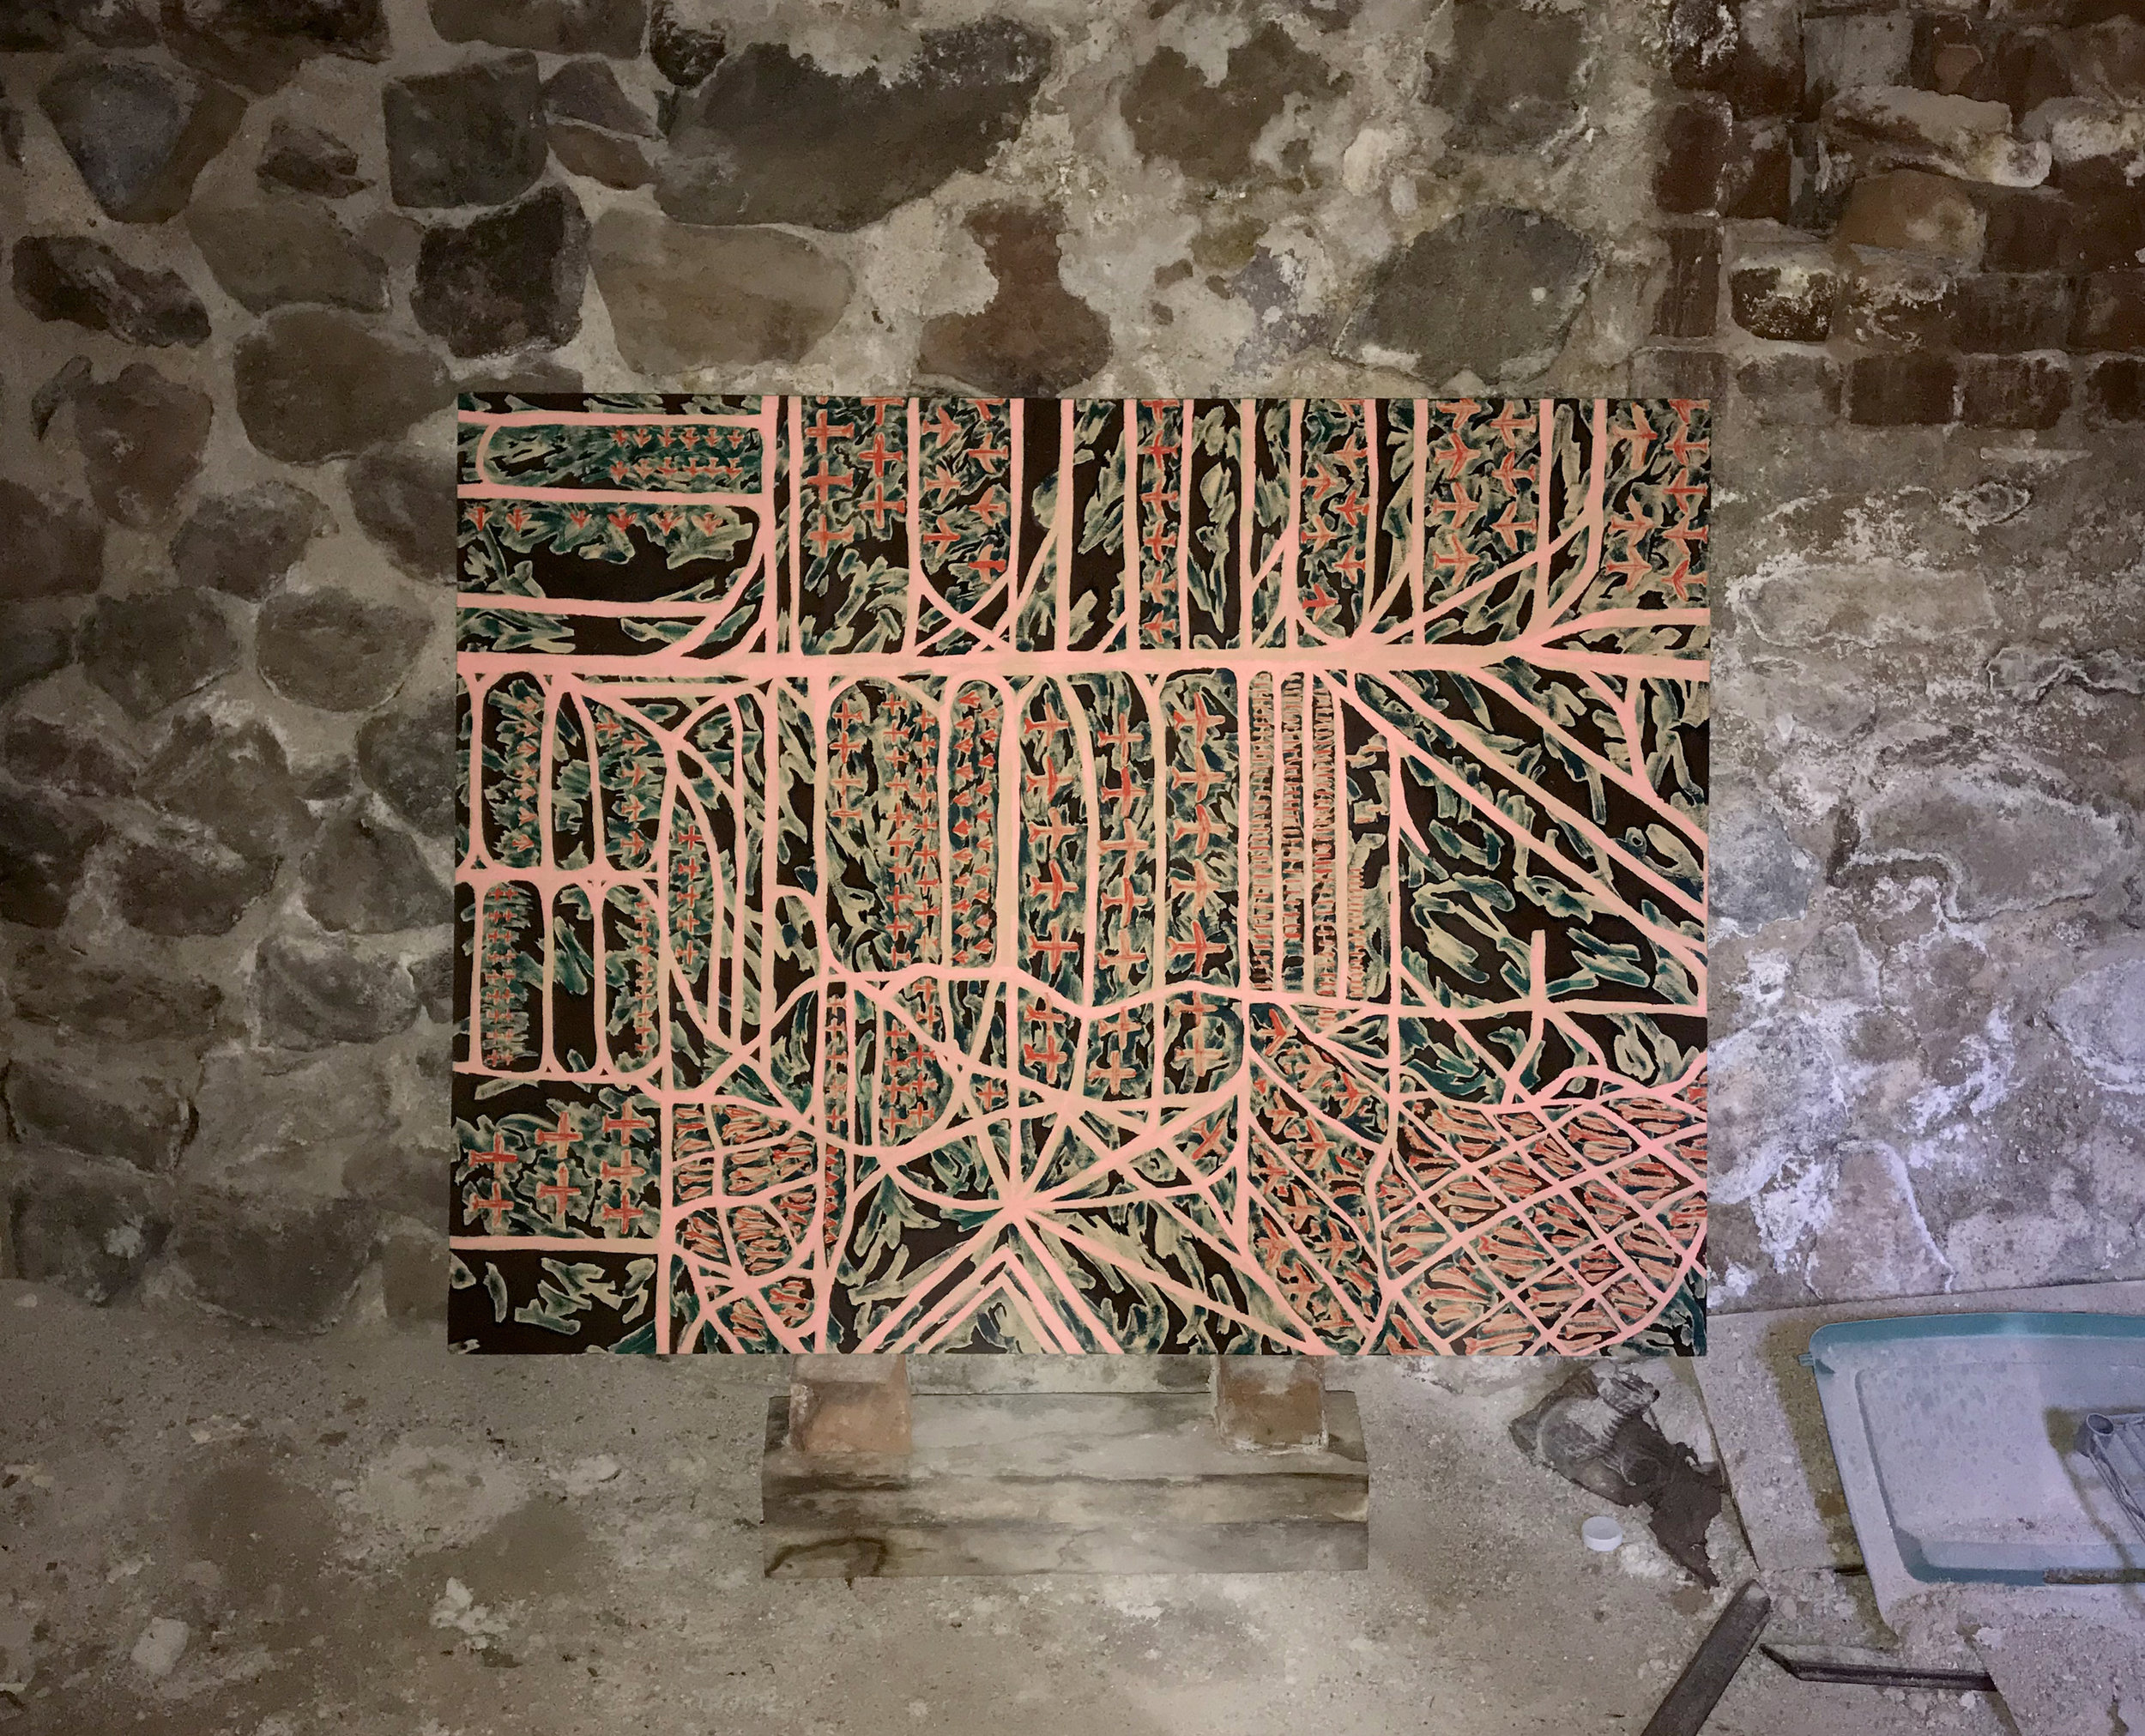 Annie Swiderski,  Resting Place , Acrylic, gouache, and AMARG dirt on canvas, in artist's basement, 2018. Photo by Annie Swiderski (c) 2018.